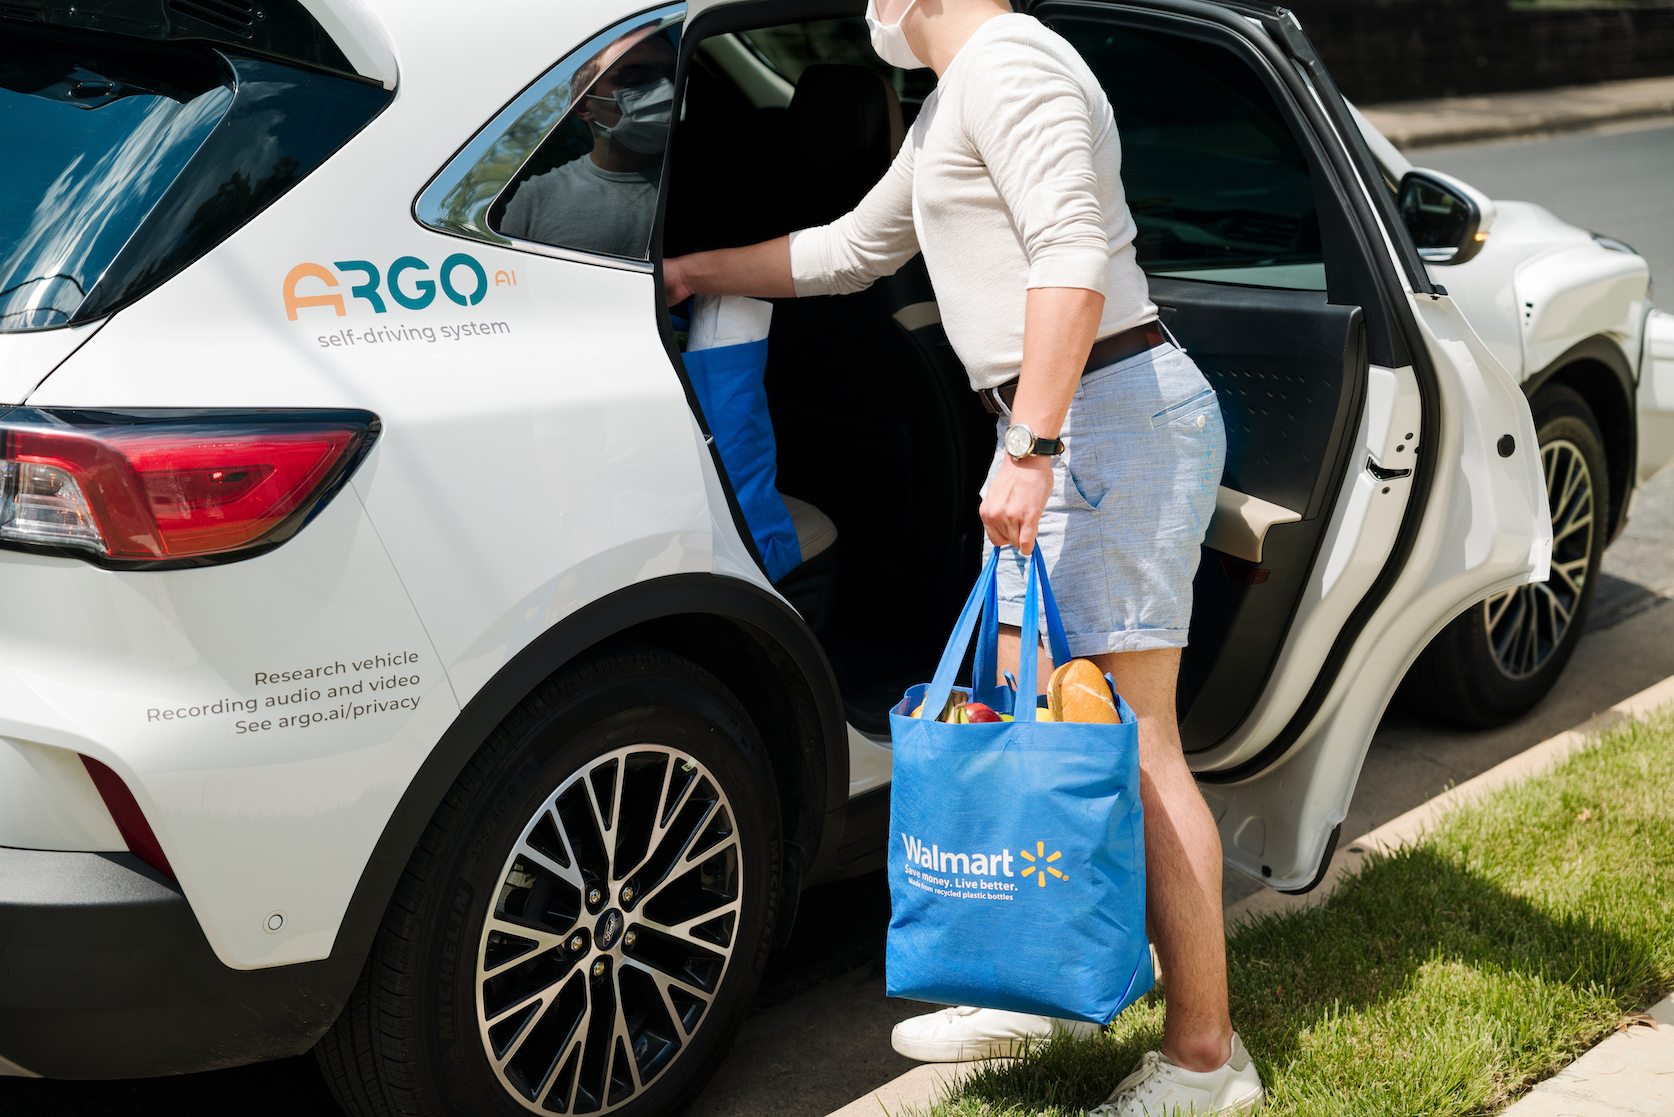 Walmart is teaming with Ford and autonomous vehicle technology company Argo AI to deploy a last-mile delivery service in three cities.